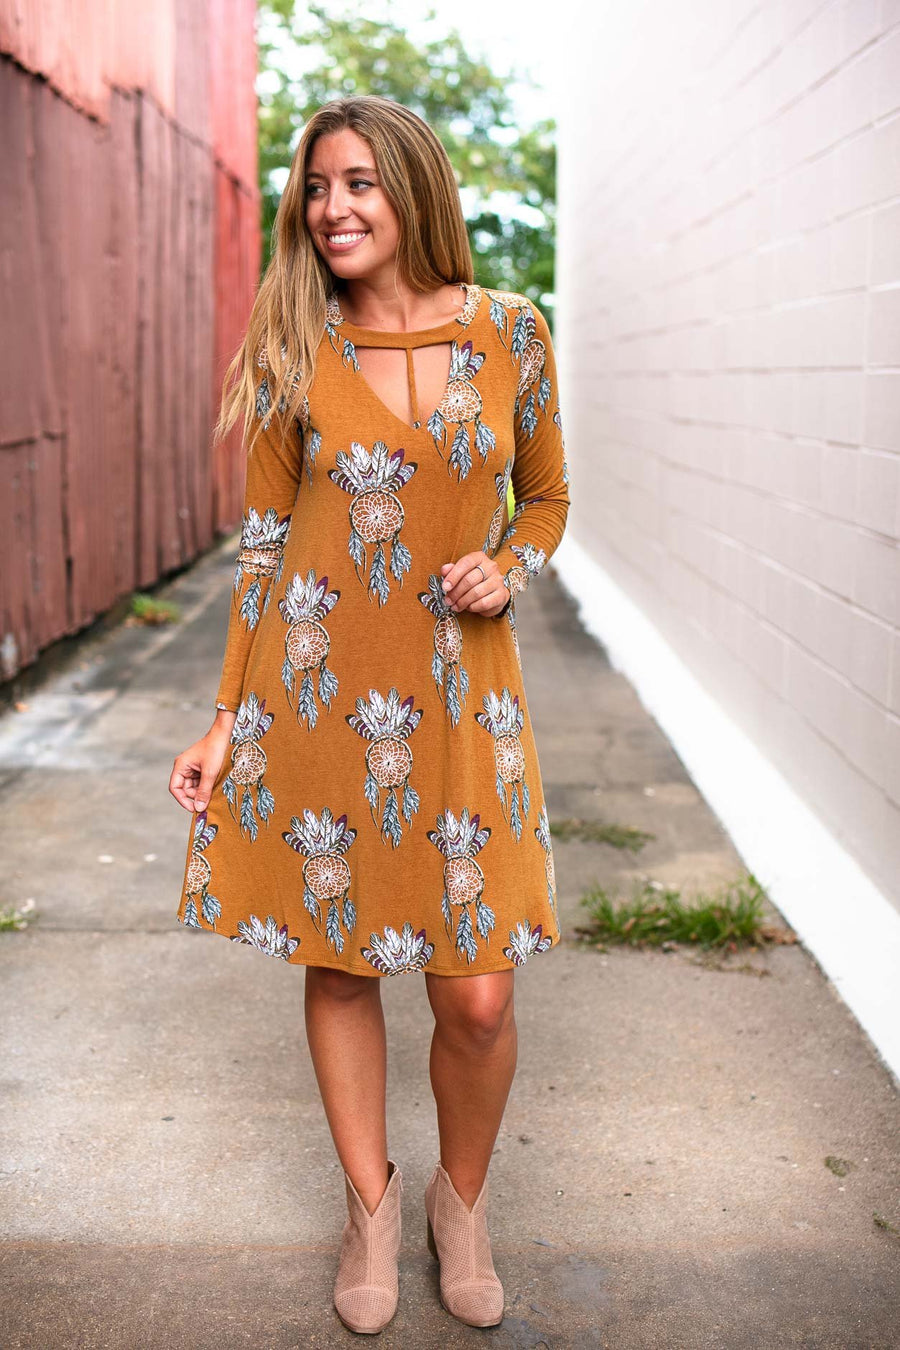 Dresses Catching Dreams Mustard Print Dress - Lotus Boutique